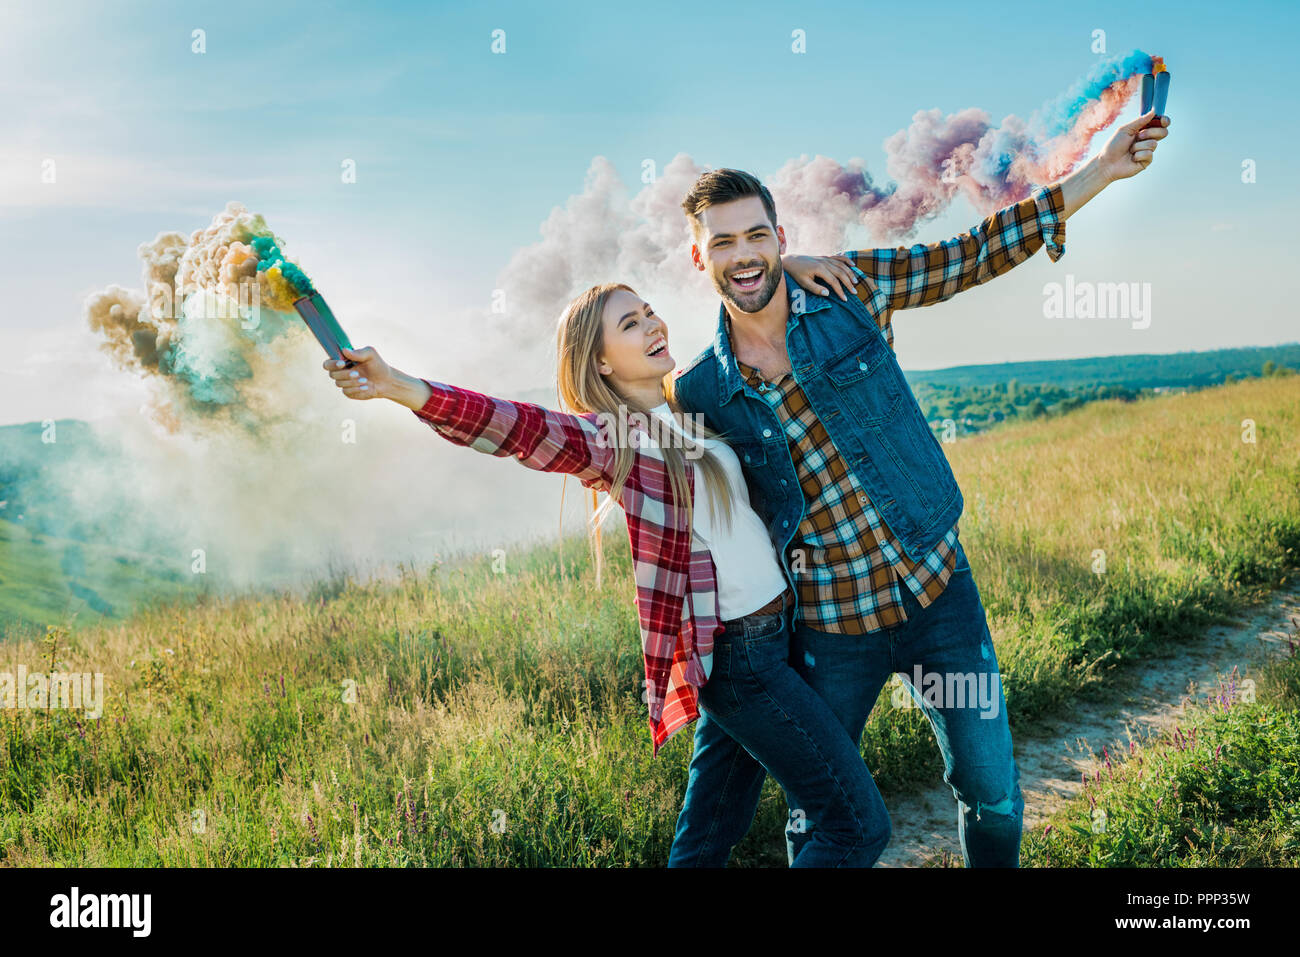 young couple holding colorful smoke bombs on rural meadow - Stock Image